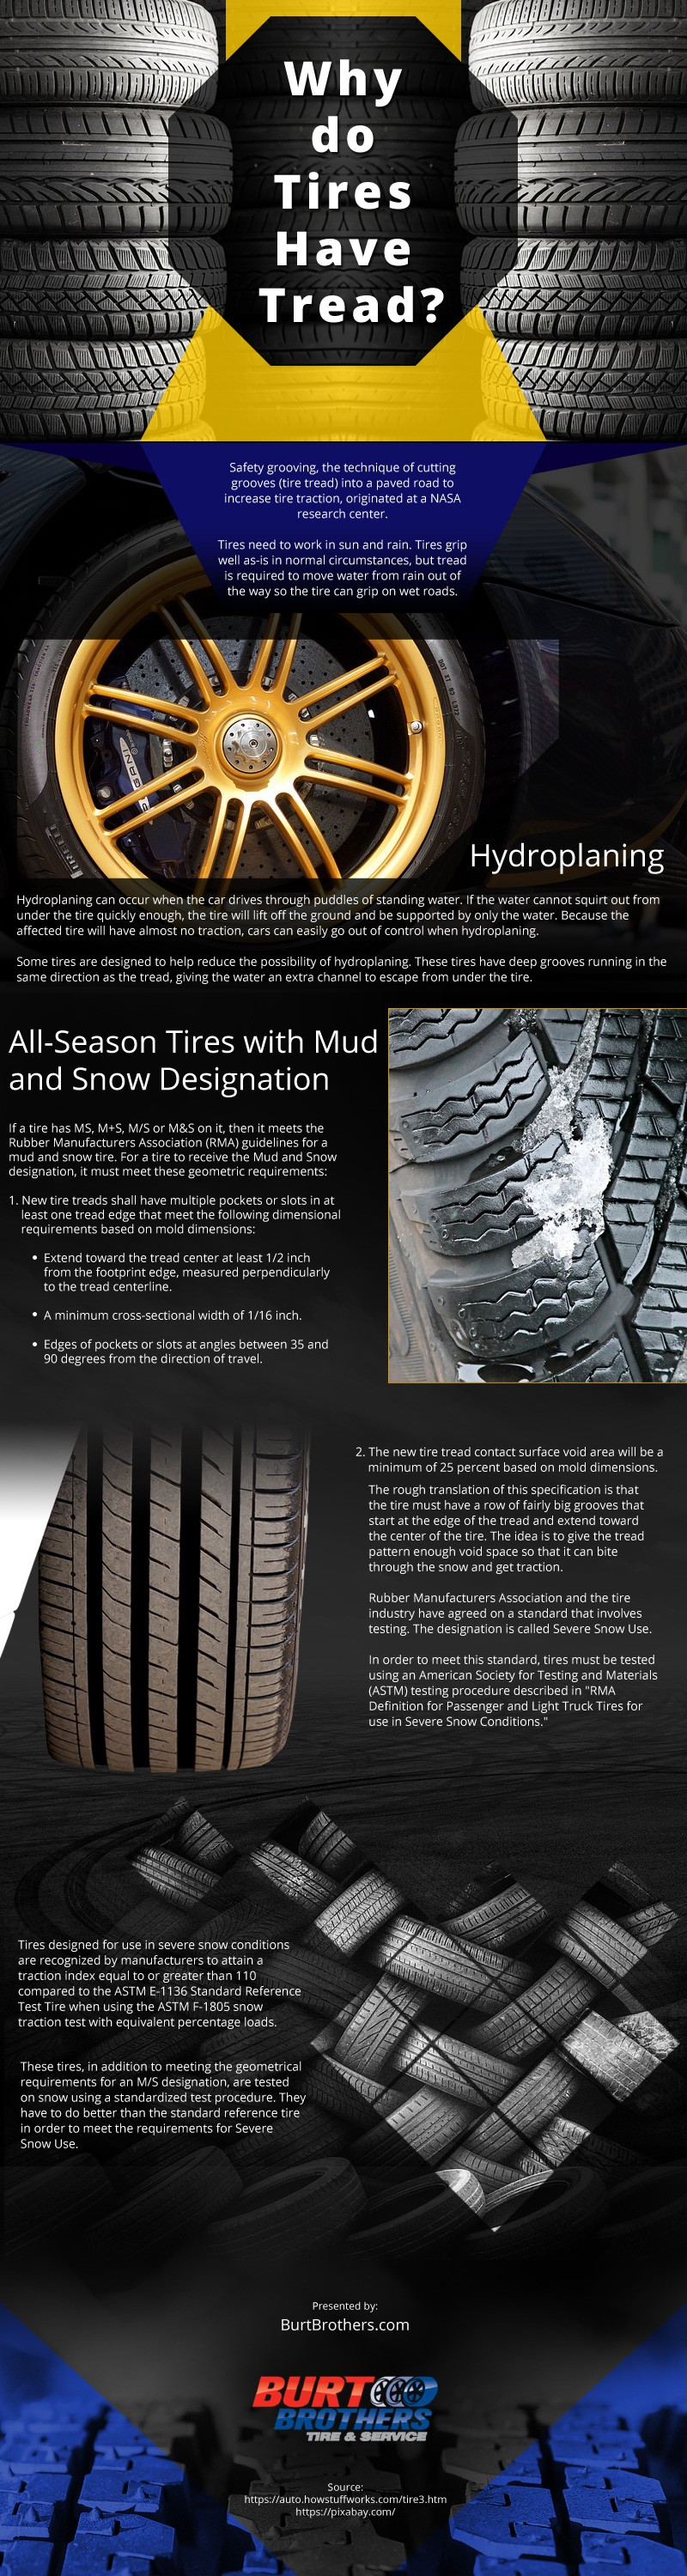 Why Do Tires Have Tread? [infographic]